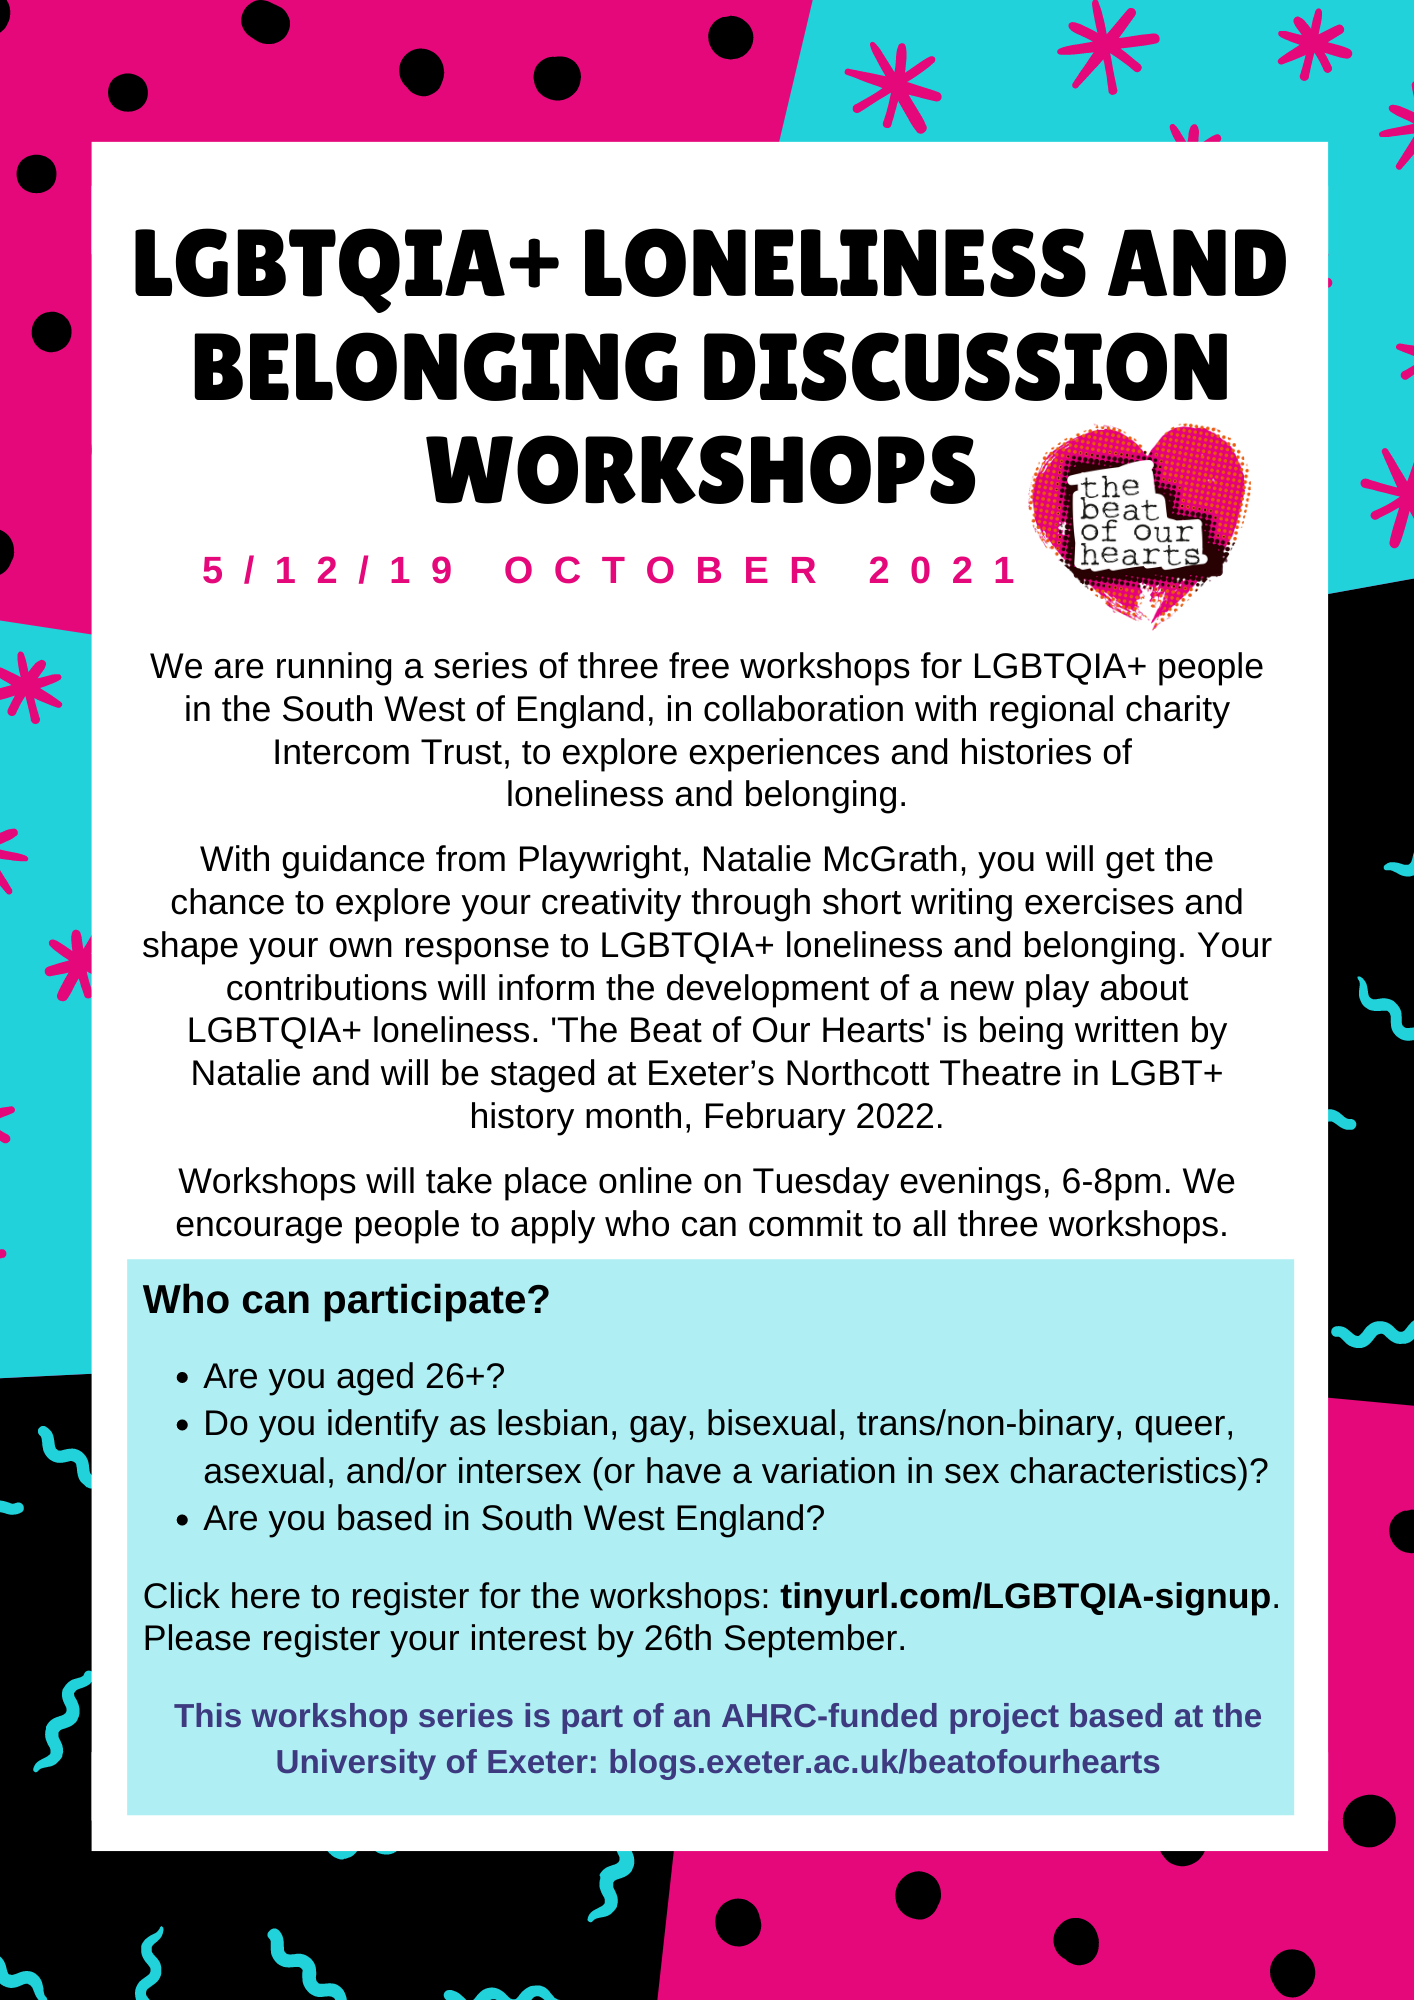 Call for expressions of interest - decorated with pink, turquoise and black polka dots, starts and squiggles. Headline: LGBTQIA+ Loneliness and Belonging Discussion Workshops, 5/12/19 October 2021. We are running a series of three free workshops for LGBTQIA+ people in the South West of England, in collaboration with regional charity Intercom Trust, to explore experiences and histories of  loneliness and belonging.  With guidance from Playwright, Natalie McGrath, you will get the chance to explore your creativity through short writing exercises and shape your own response to LGBTQIA+ loneliness and belonging. Your contributions will inform the development of a new play about LGBTQIA+ loneliness. 'The Beat of Our Hearts' is being written by Natalie and will be staged at Exeter's Northcott Theatre in LGBT+ history month, February 2022.  Workshops will take place online on Tuesday evenings, 6-8pm. We encourage people to apply who can commit to all three workshops.  In a separate blue box: Who can participate?  Are you aged 26+? Do you identify as lesbian, gay, bisexual, trans/non-binary, queer,  asexual, and/or intersex (or have a variation in sex characteristics)? Are you based in South West England?   Click here to register for the workshops: tinyurl.com/LGBTQIA-signup. Please register your interest by 26th September.   This workshop series is part of an AHRC-funded project based at the University of Exeter: blogs.exeter.ac.uk/beatofourhearts